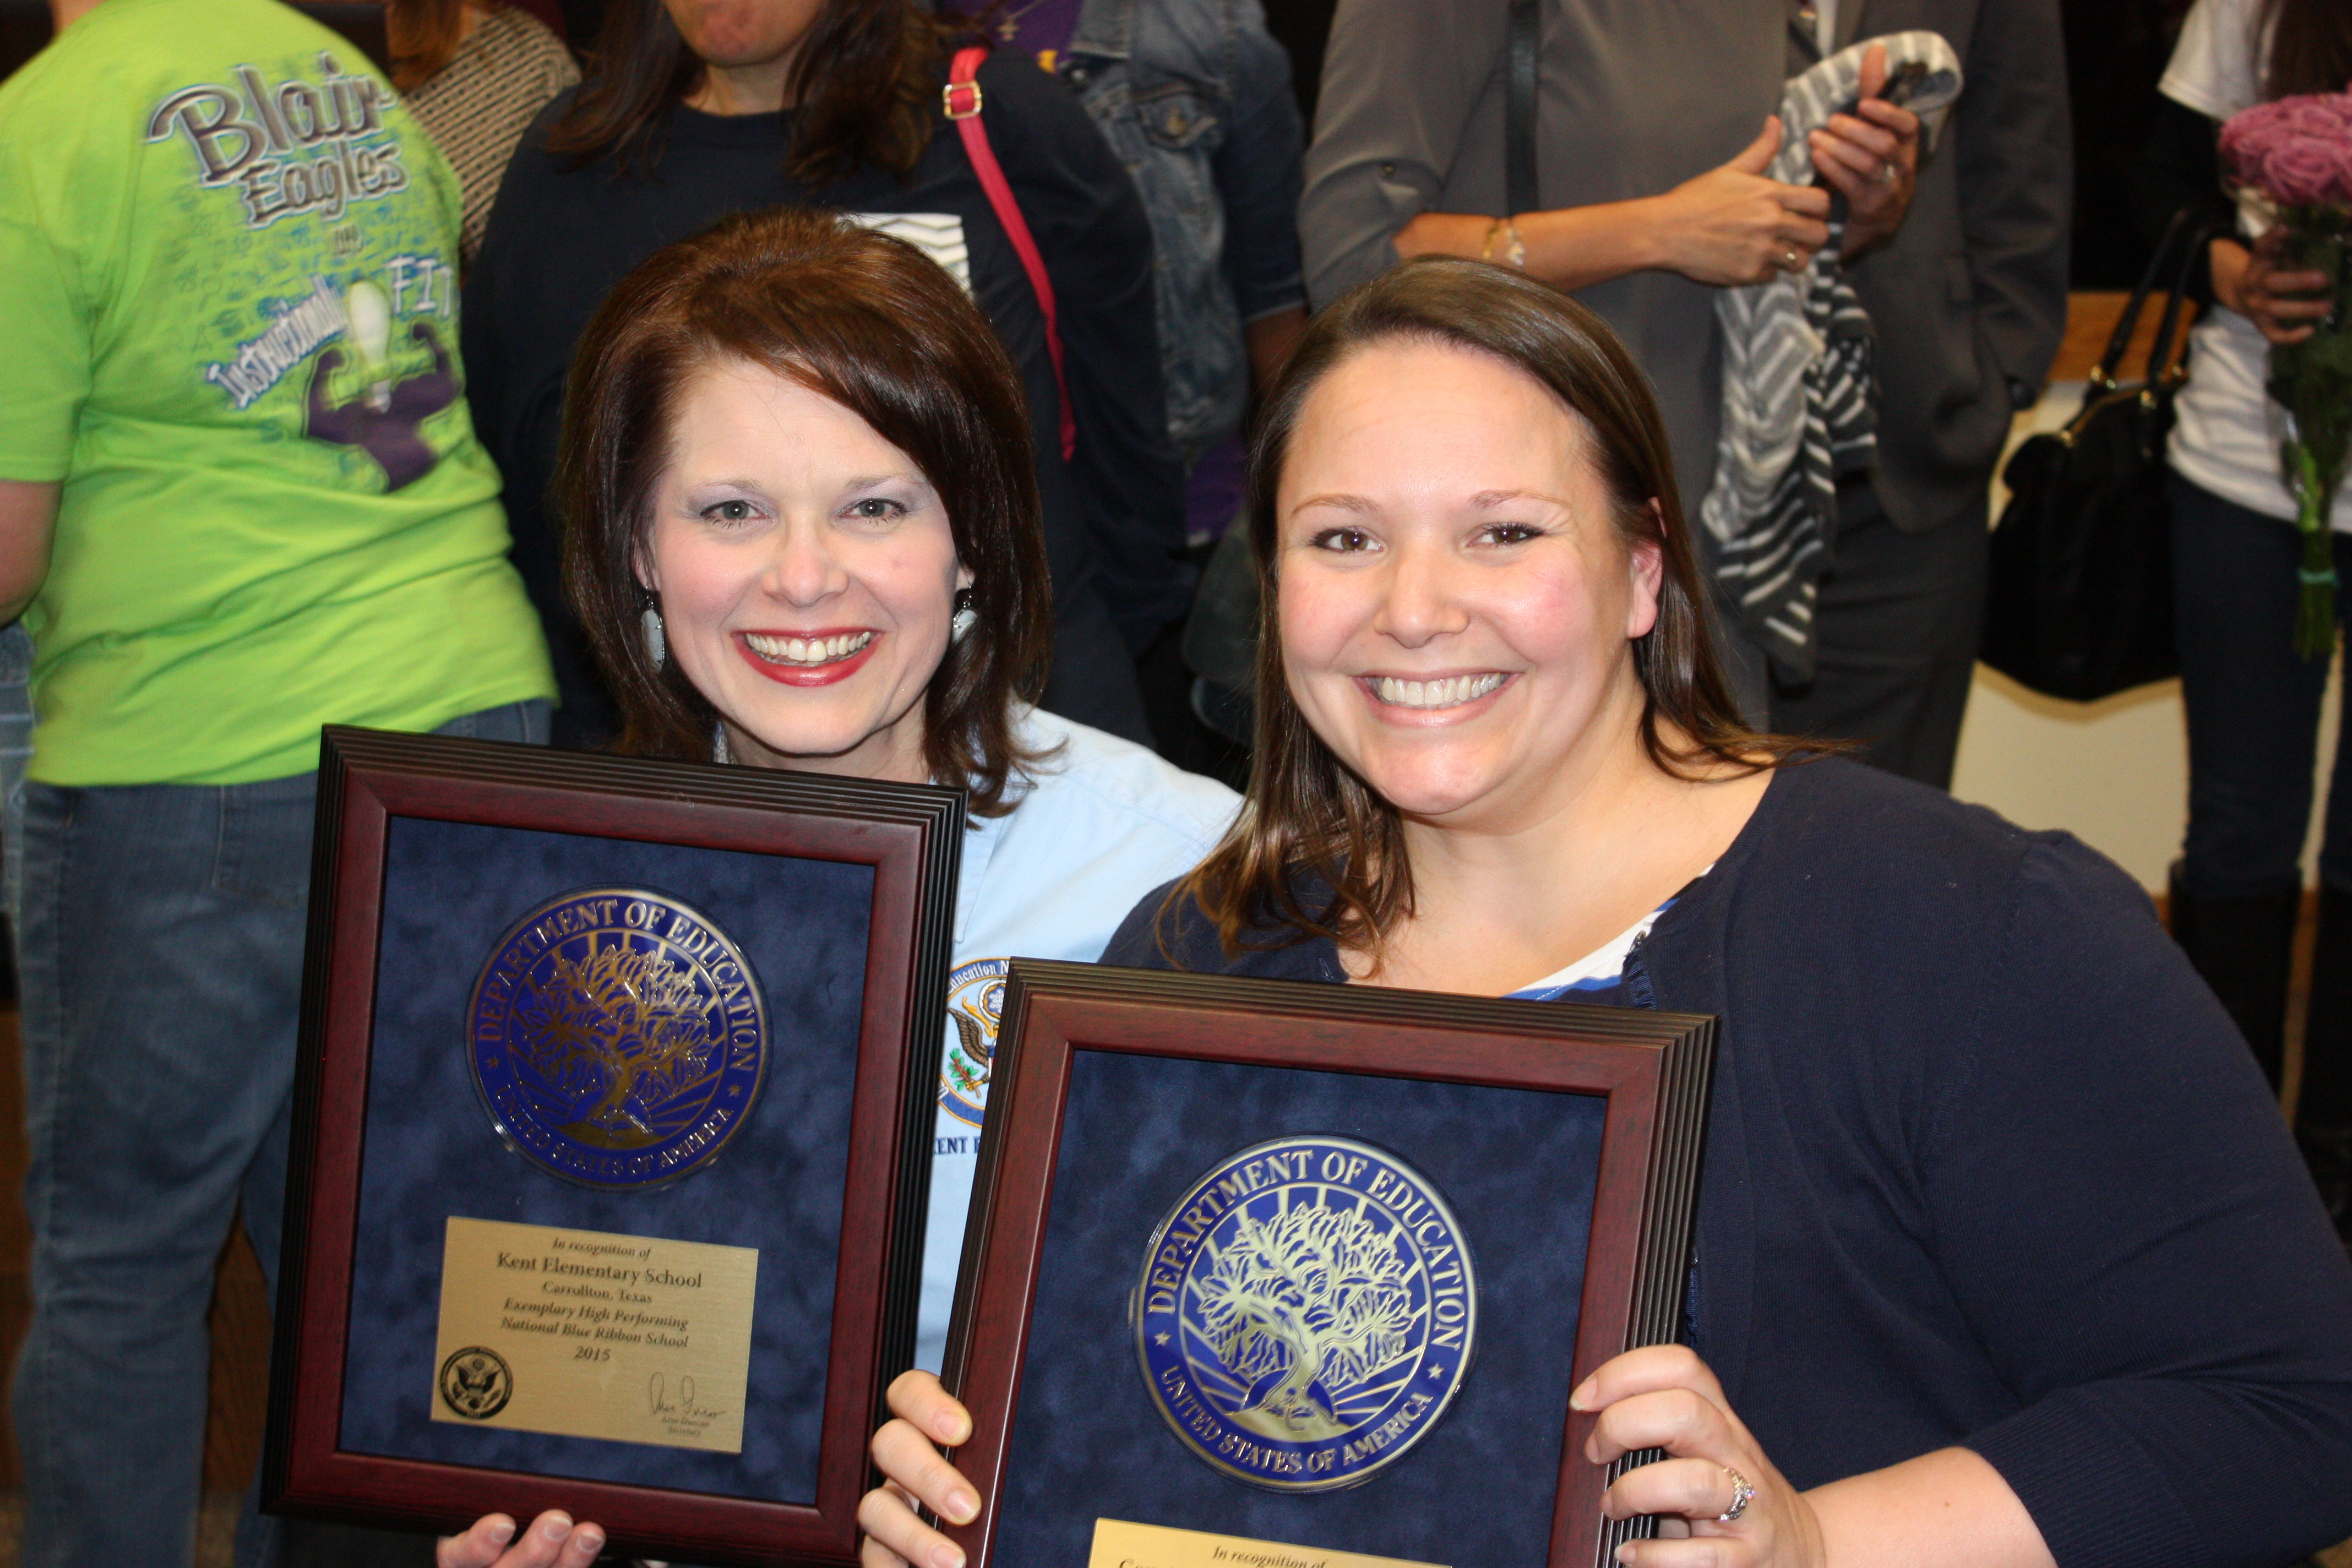 two principals from Kent & Country Place Elementary